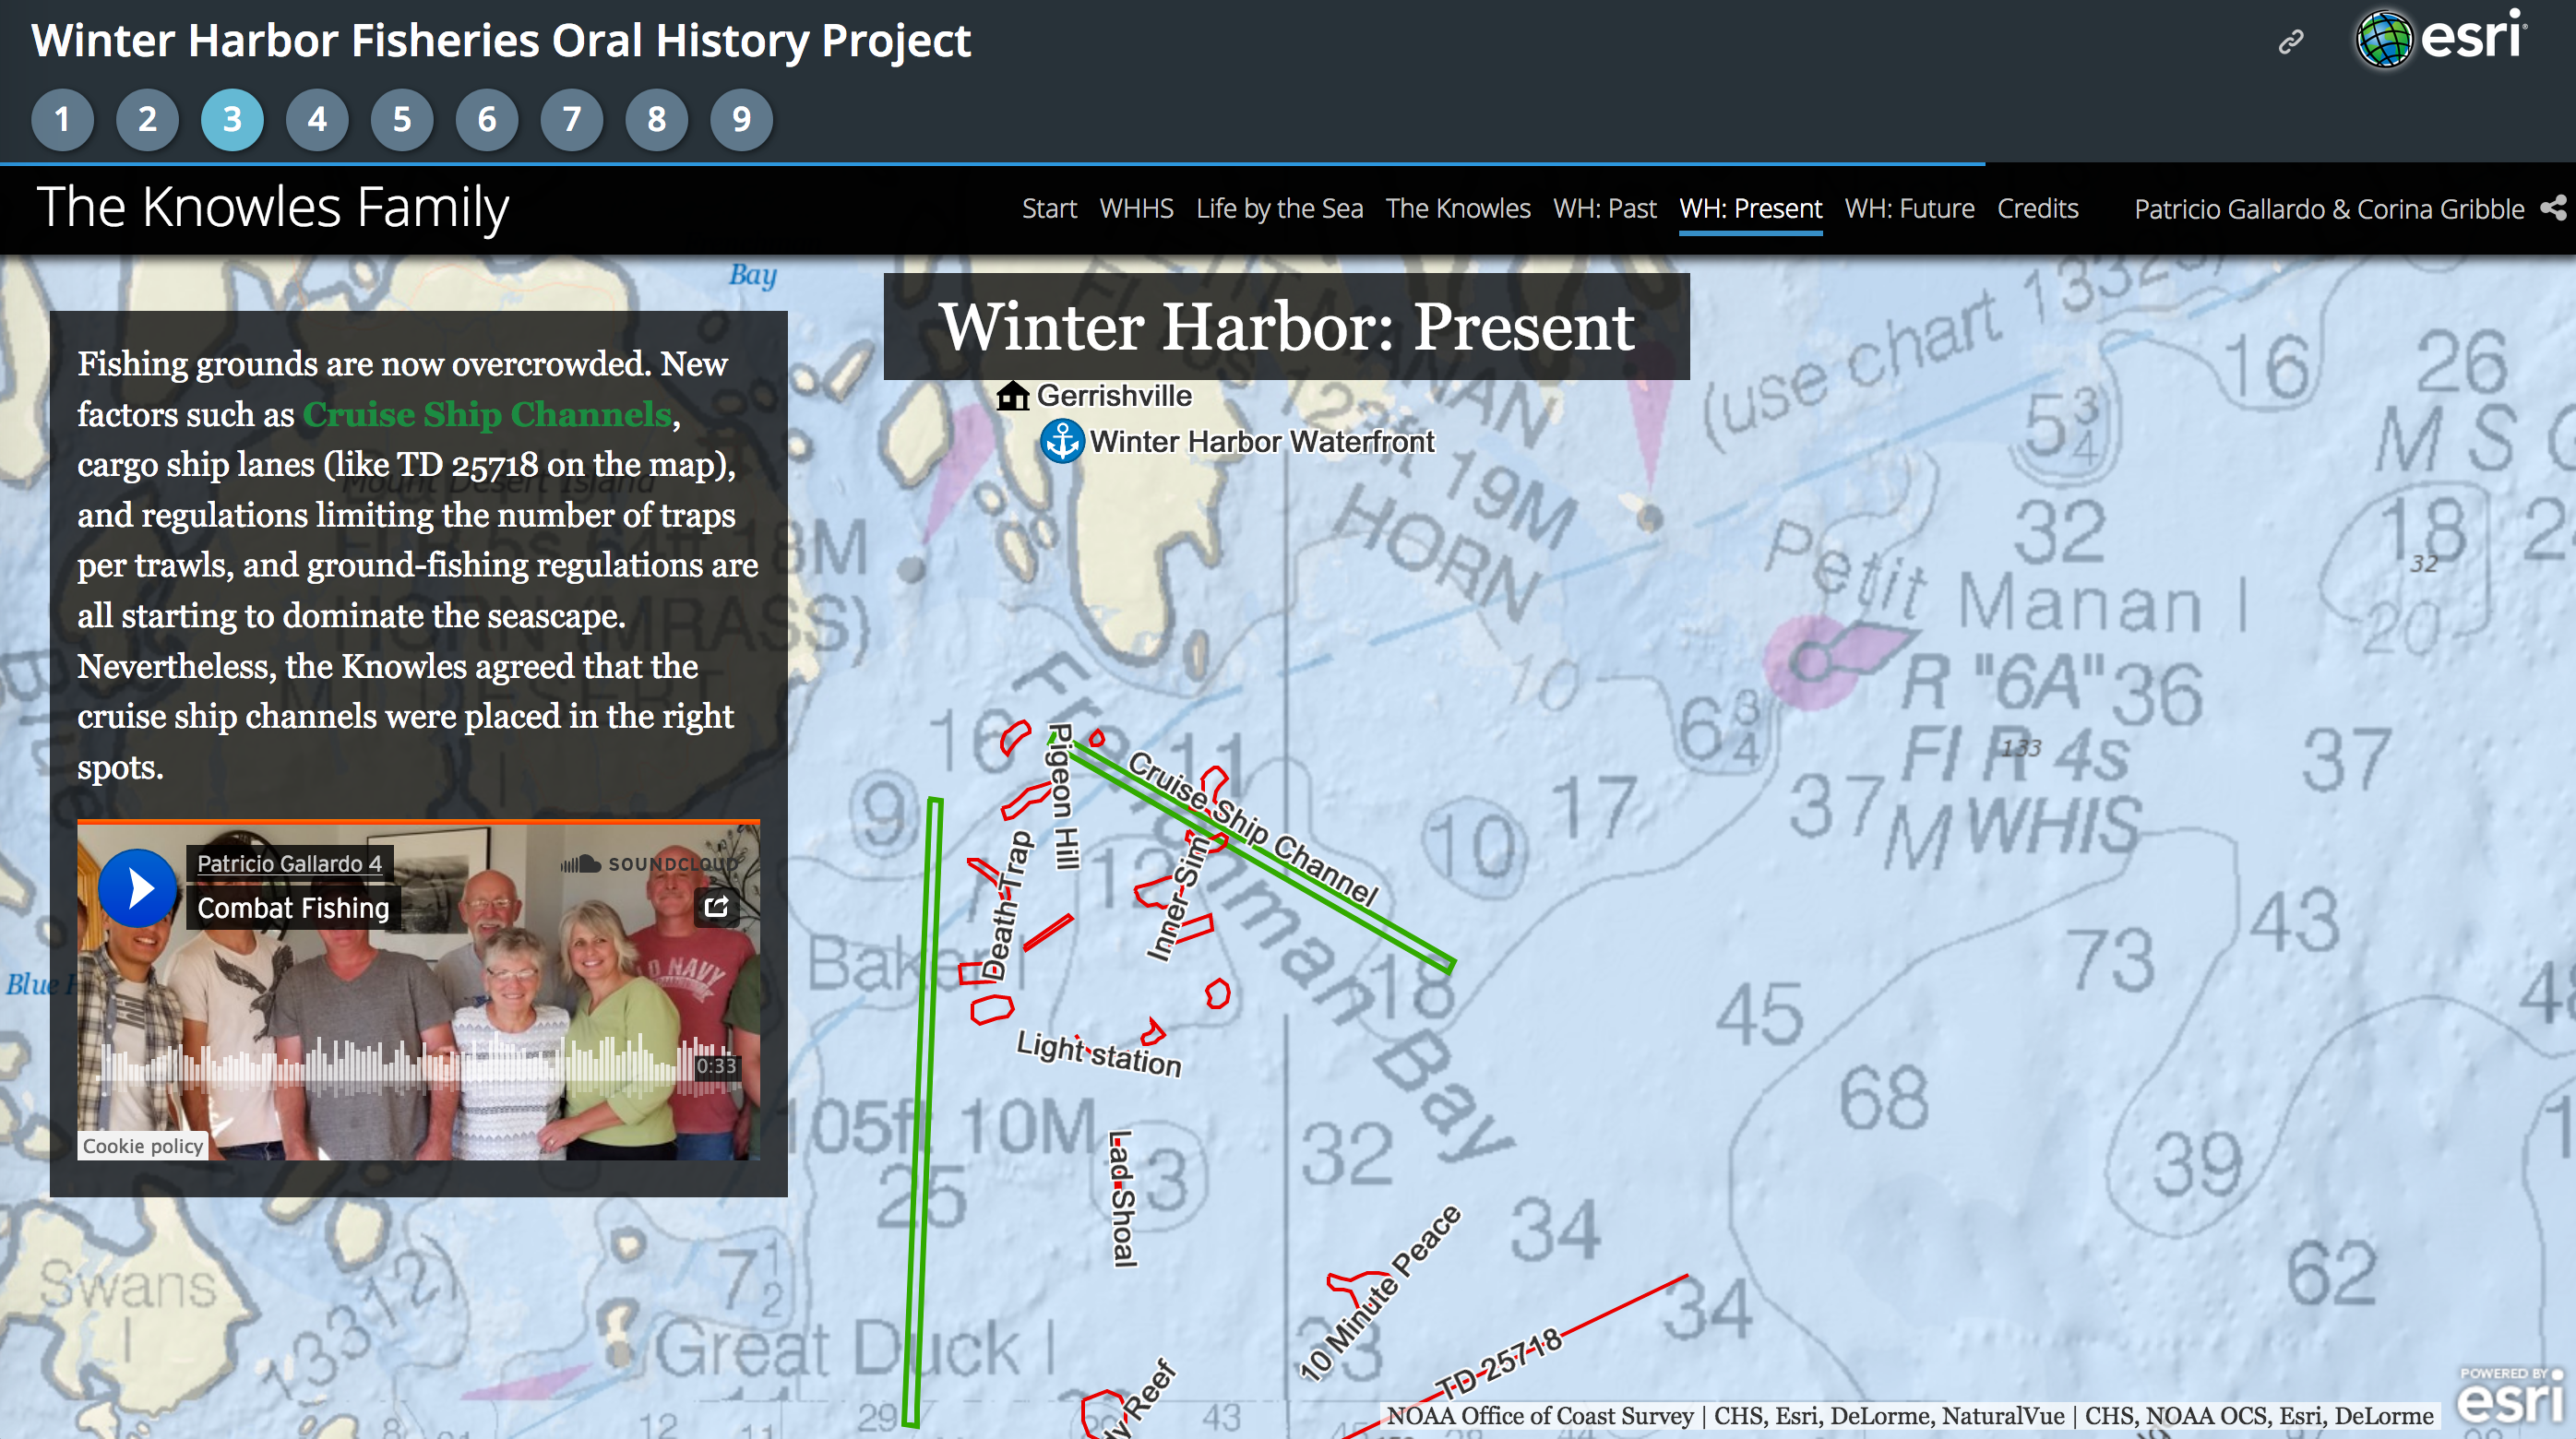 A screen capture of the Winter Harbor Fisheries Oral History project showing a map with an inset displaying information about fishing grounds